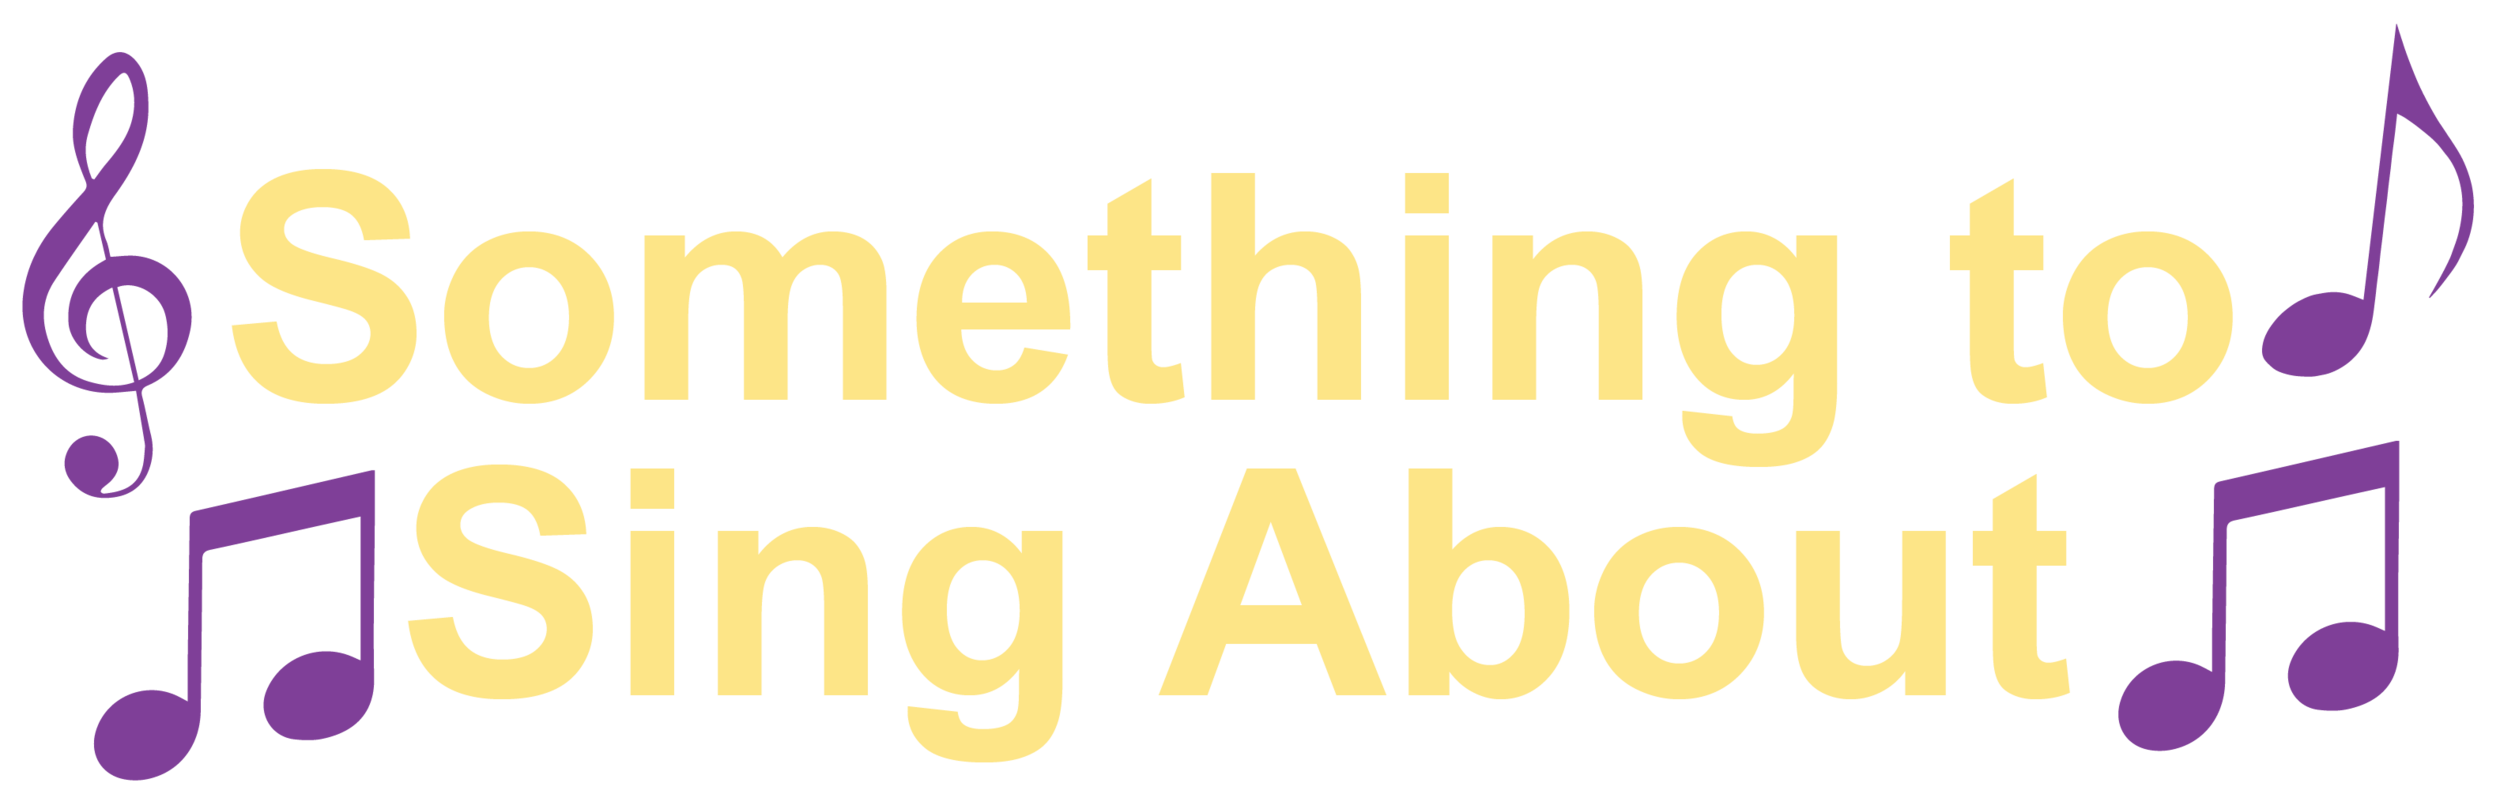 CW_Something to Sing About-01.png